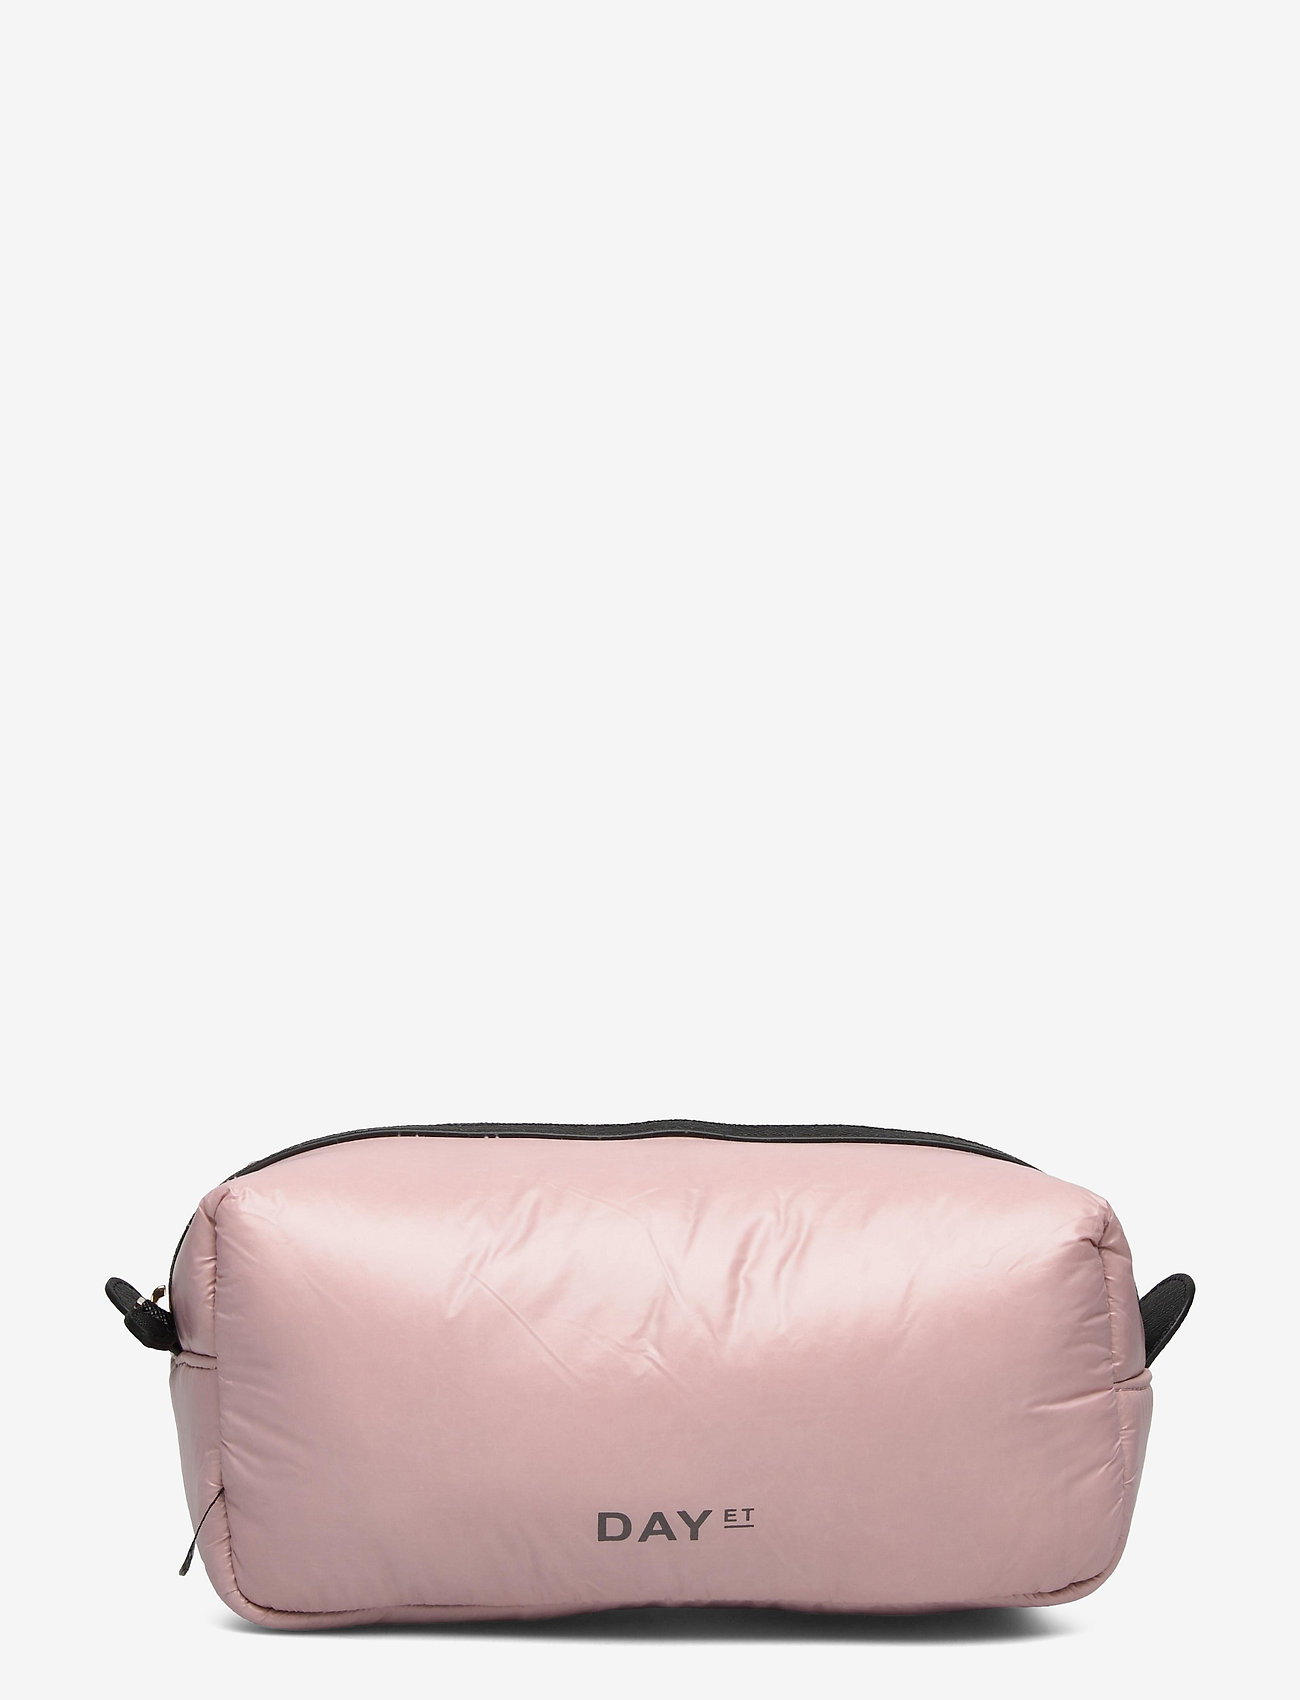 DAY et - Day Sportastic Cosmetic - cosmetic bags - antler rose - 0